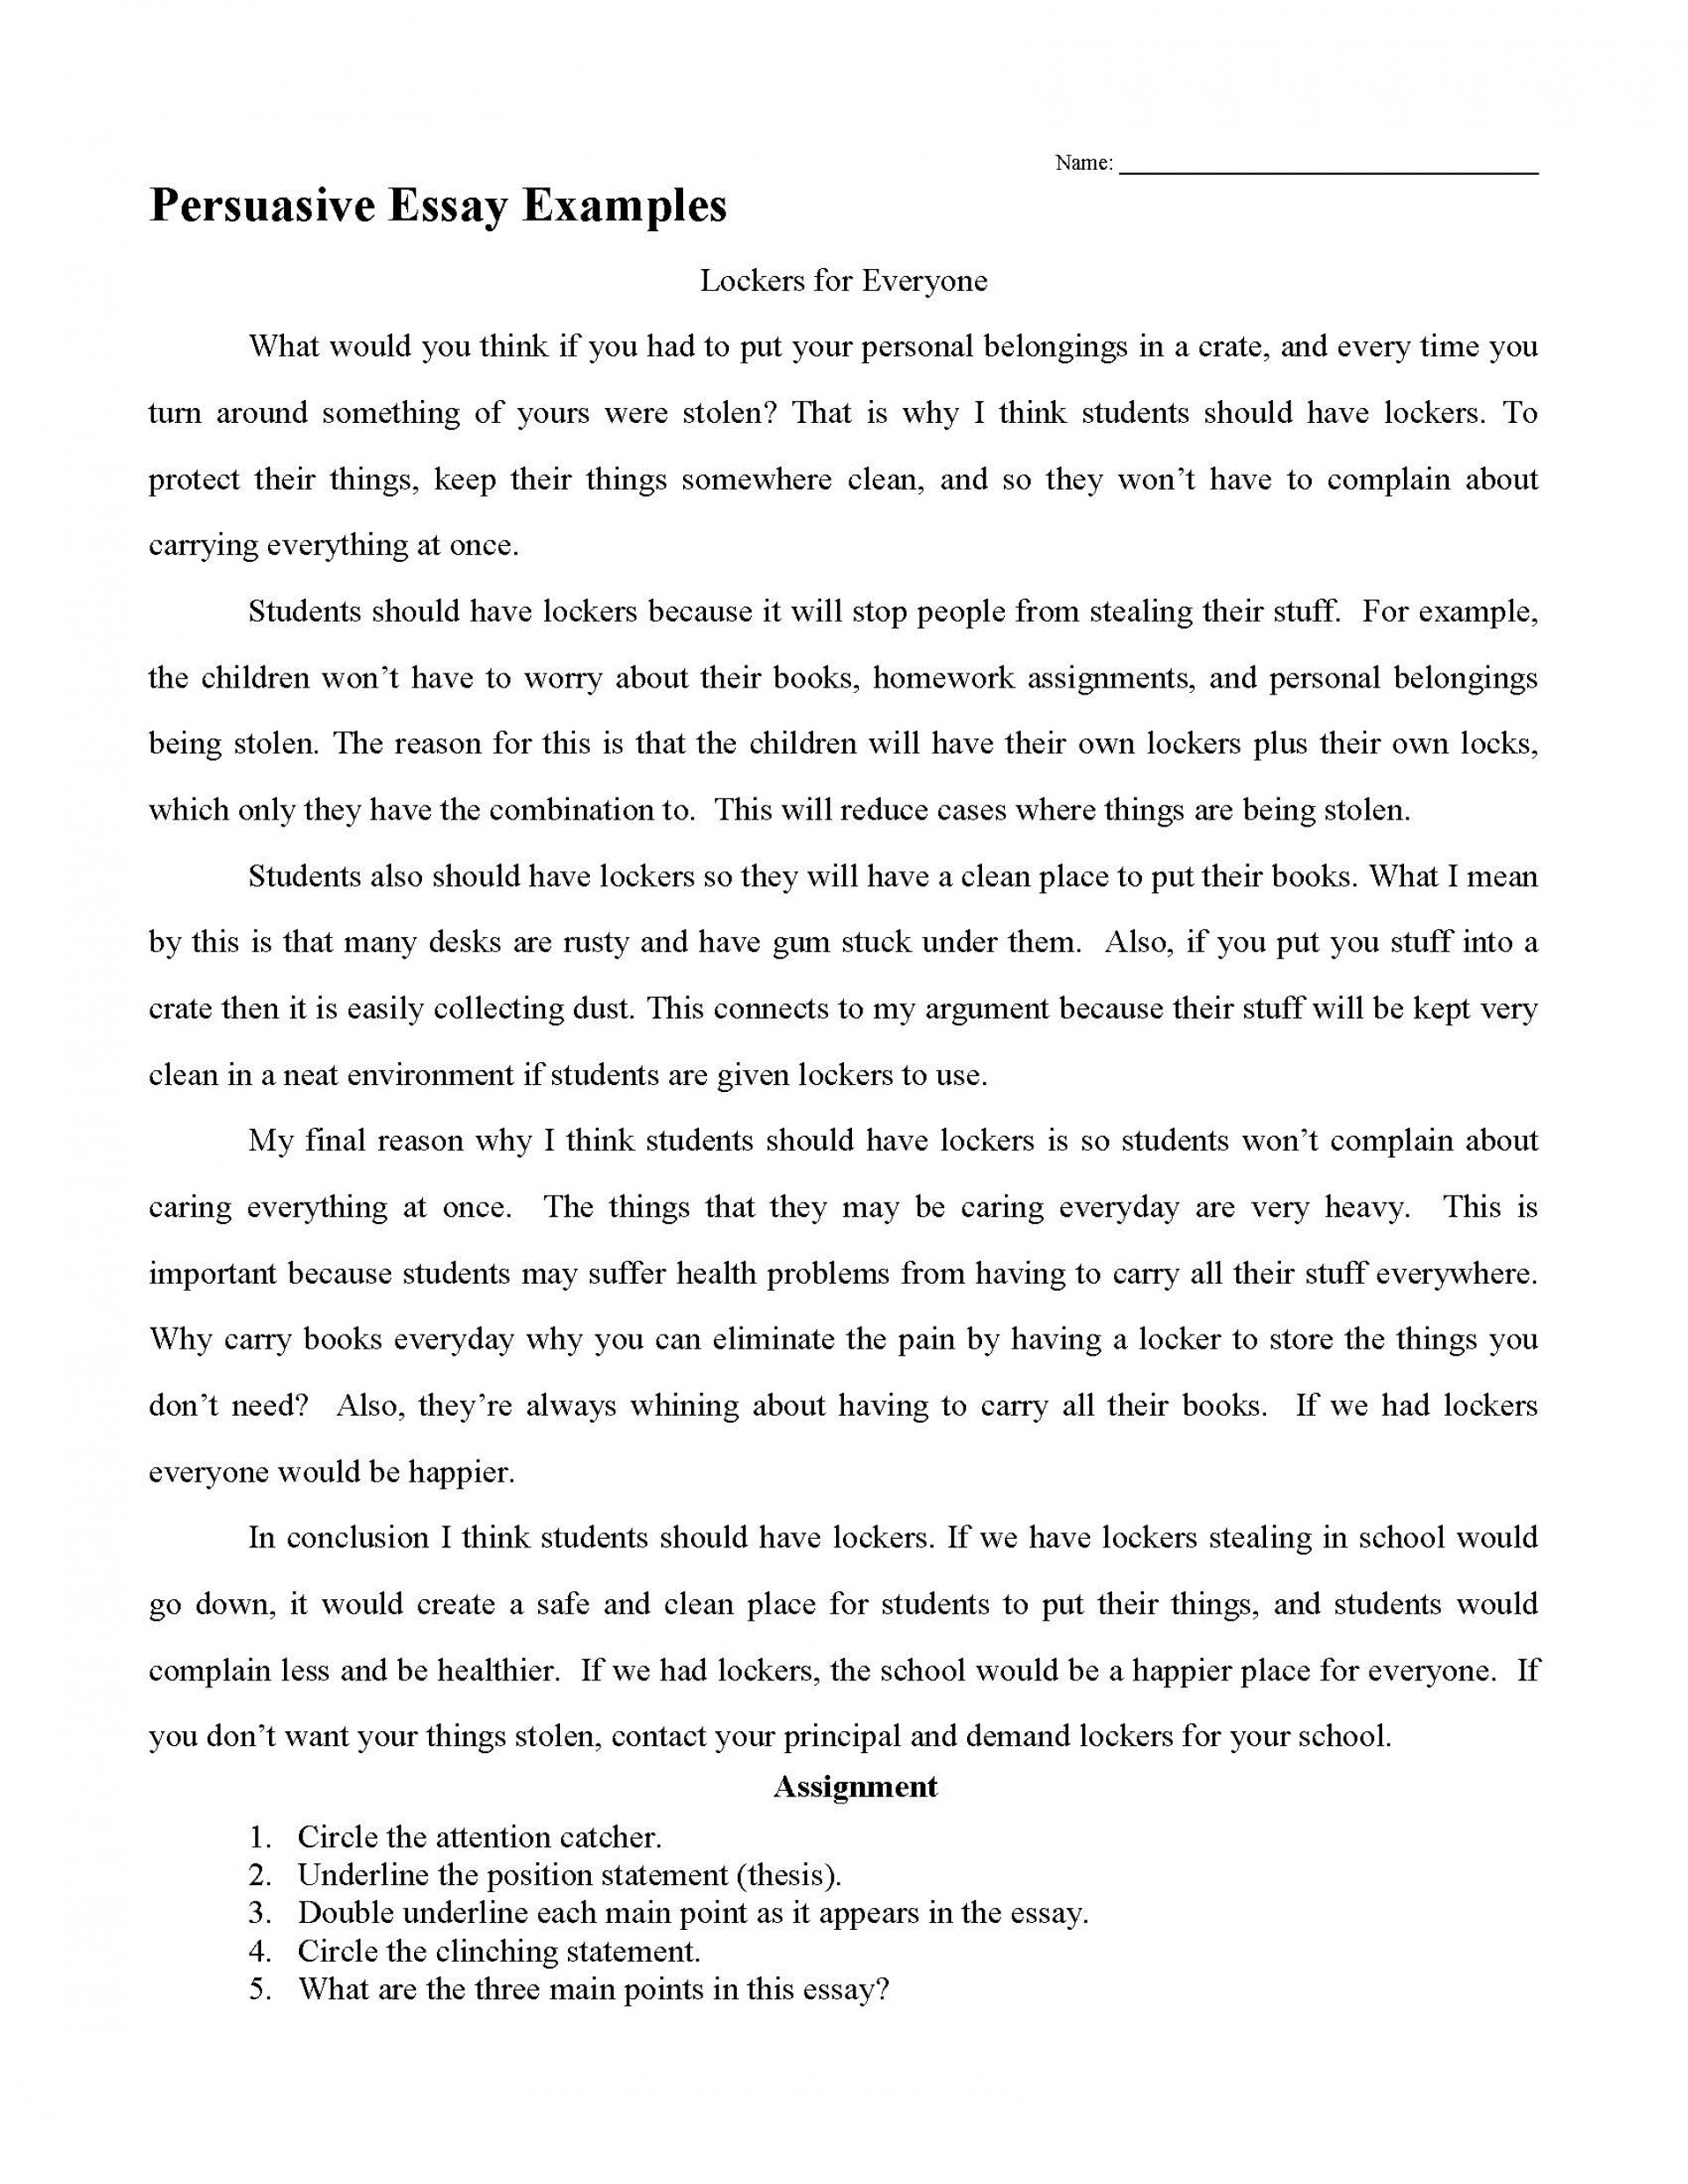 001 Examples Of Persuasive Essays Essay Example Excellent 5th Grade Written By Graders Argumentative-persuasive Topics 1920